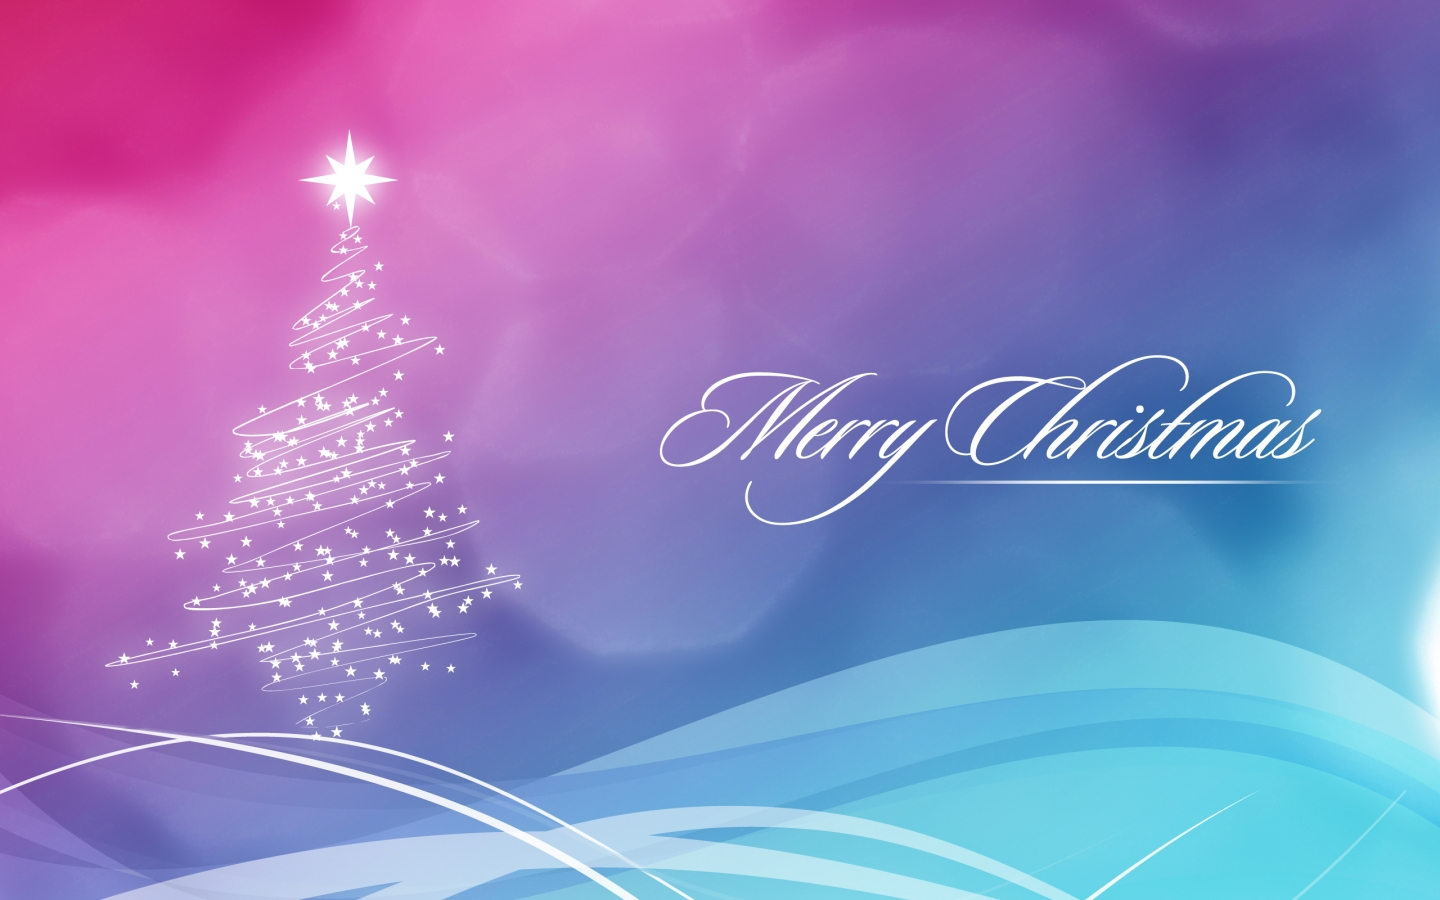 PicturesPool Happy Christmas 2013 Merry Xmas Wallpapers 1440x900